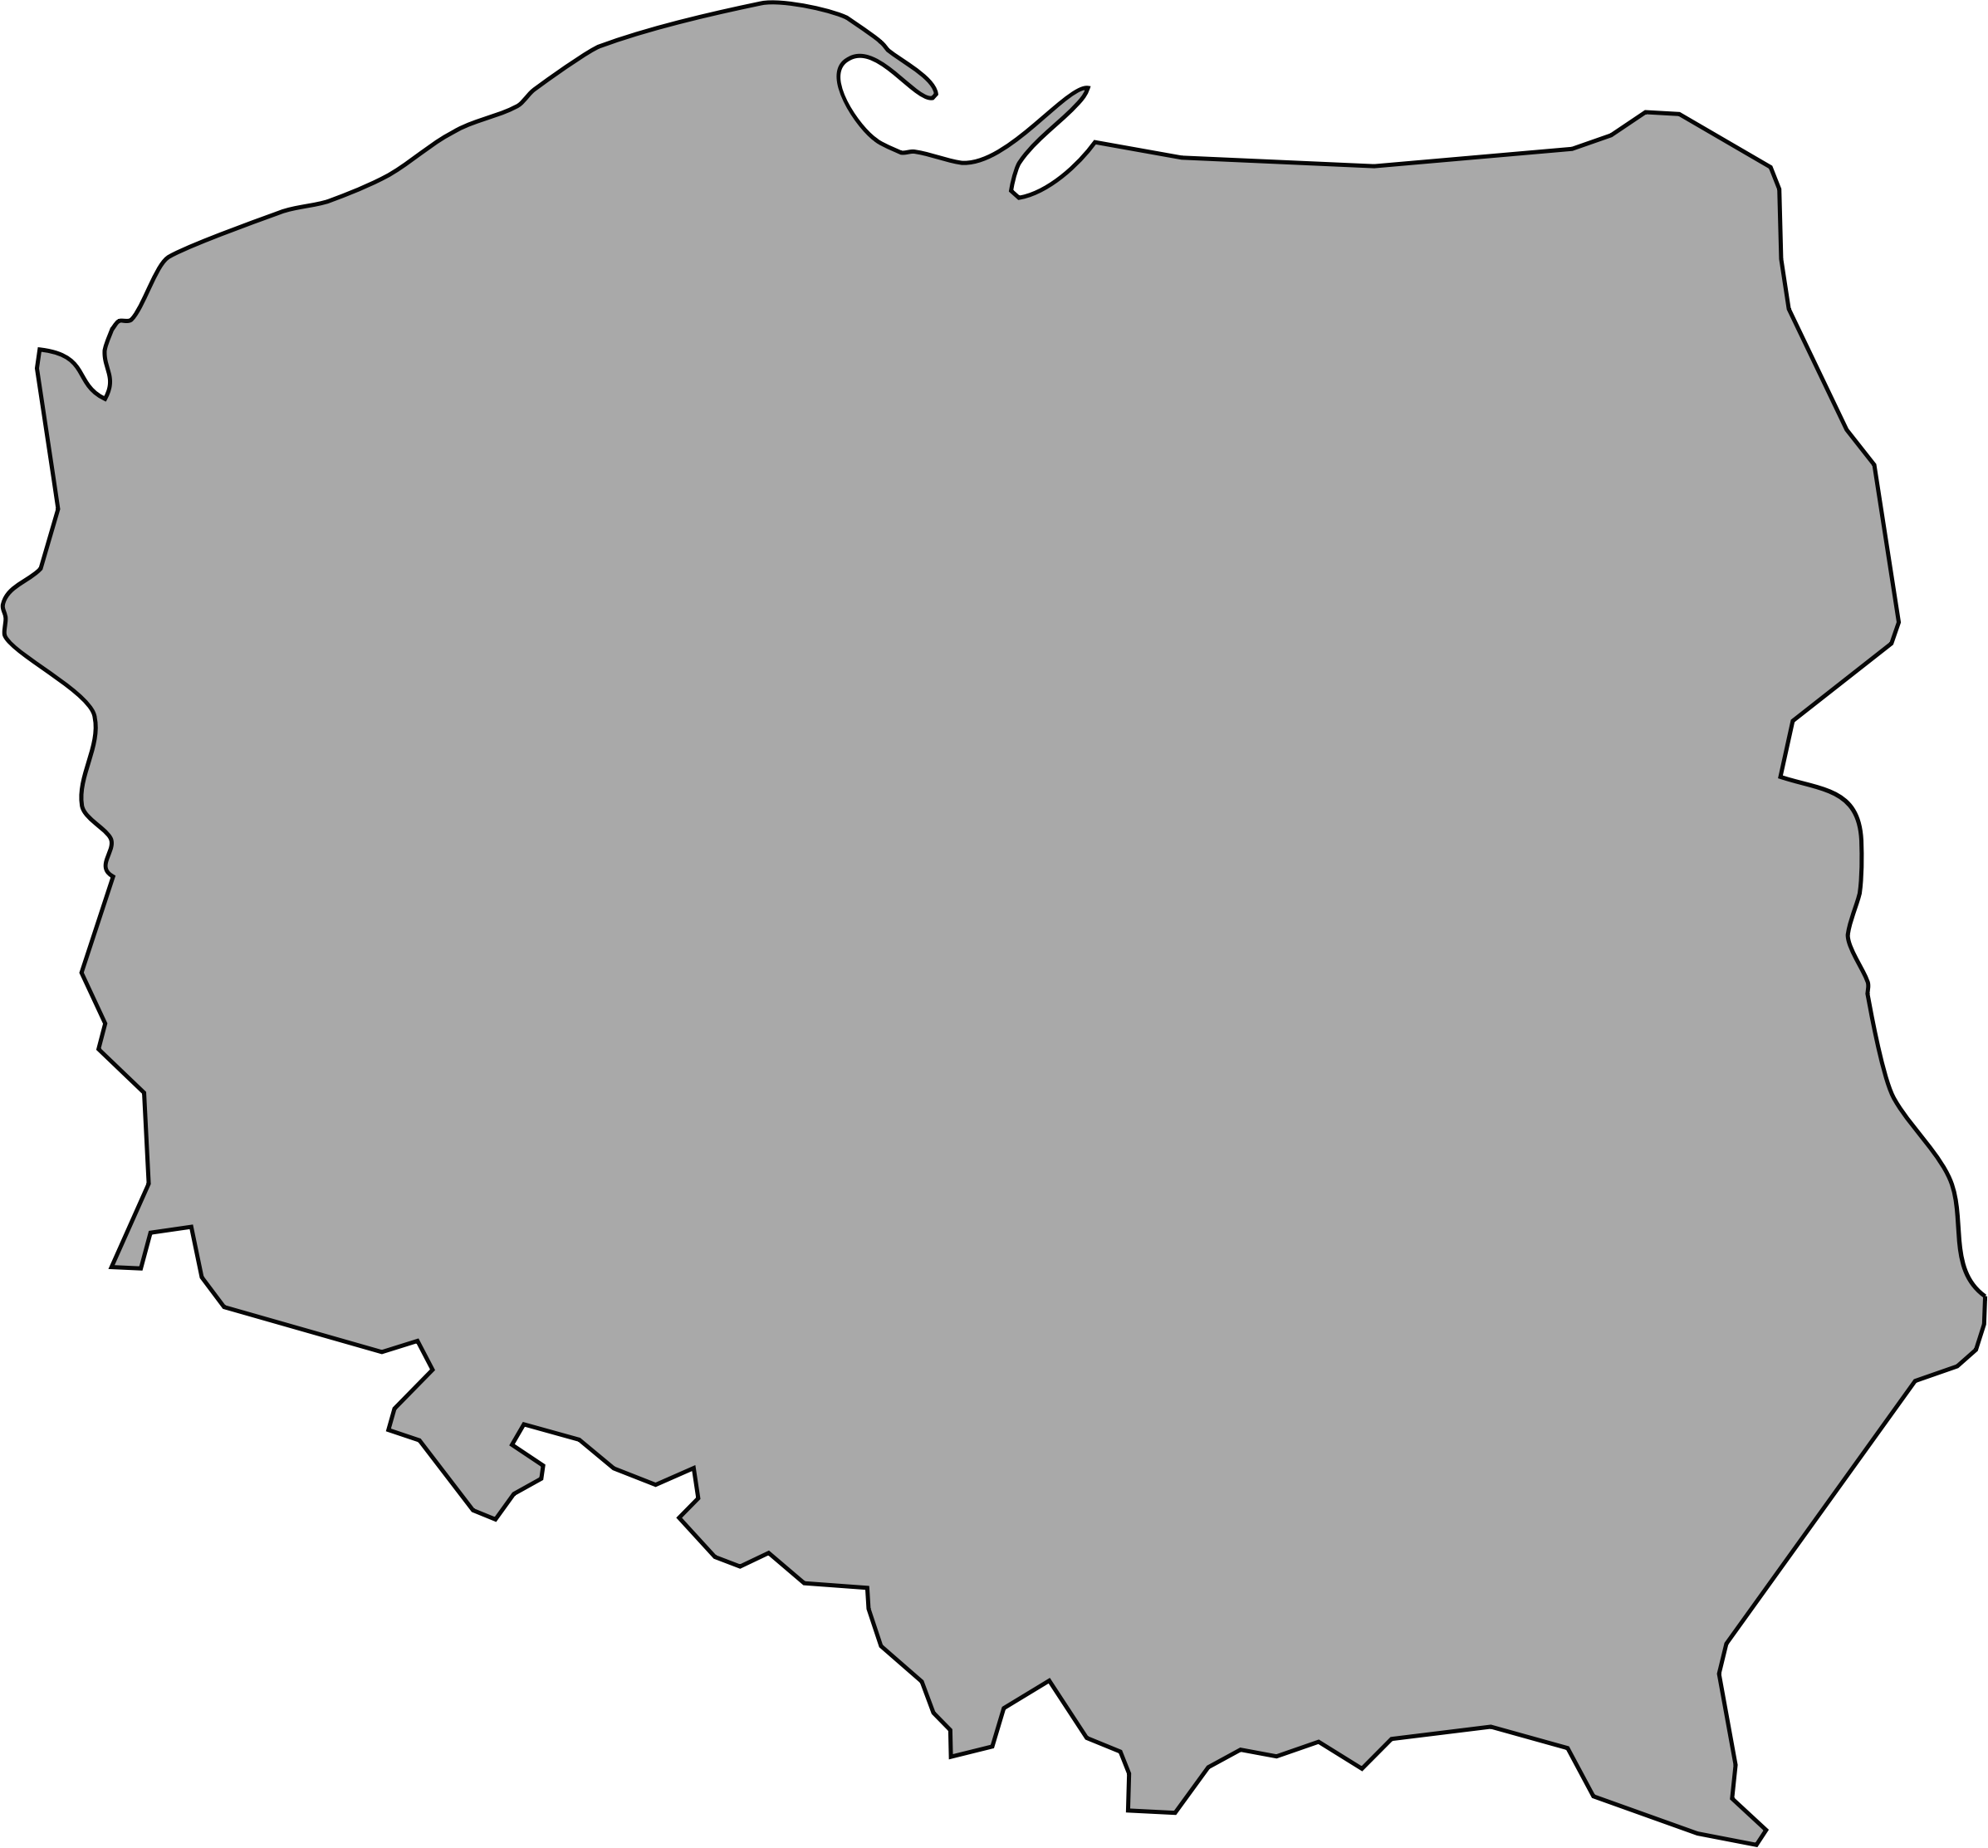 Clipart map old. Of poland big image